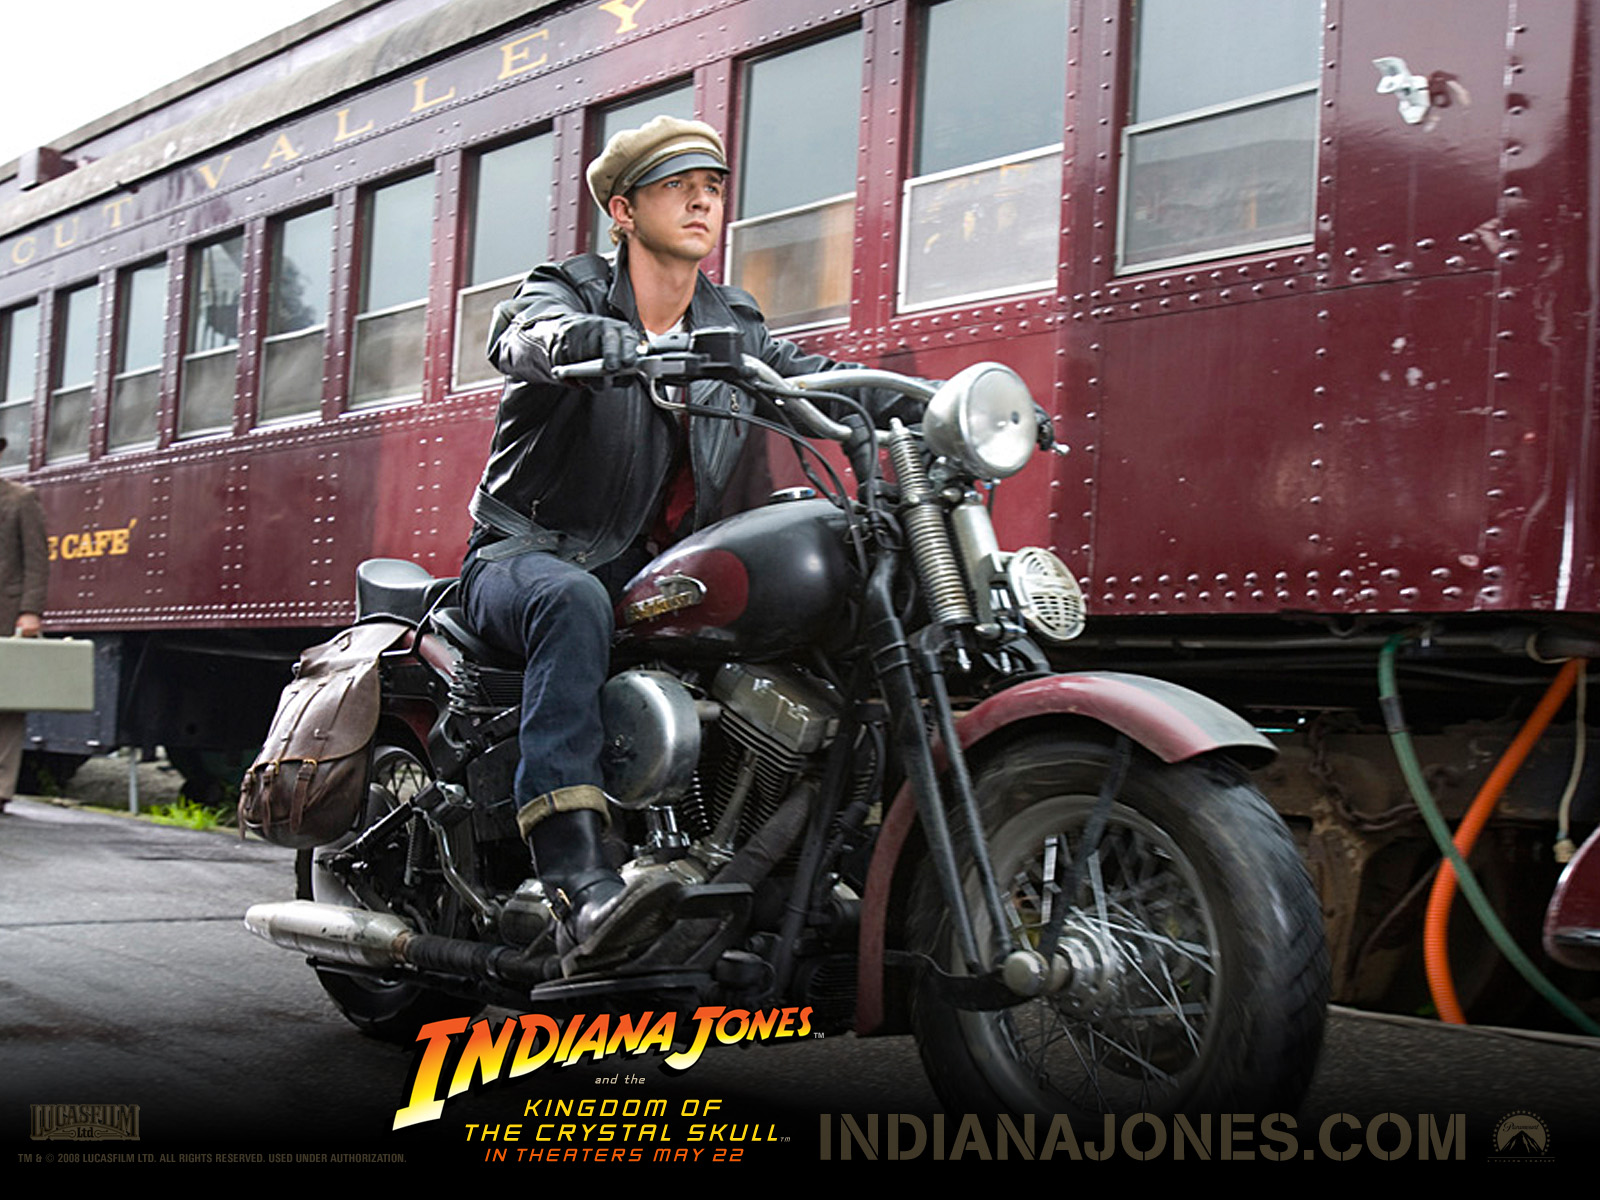 Images Indiana Jones Indiana Jones and the Kingdom of the Crystal Skull film Movies